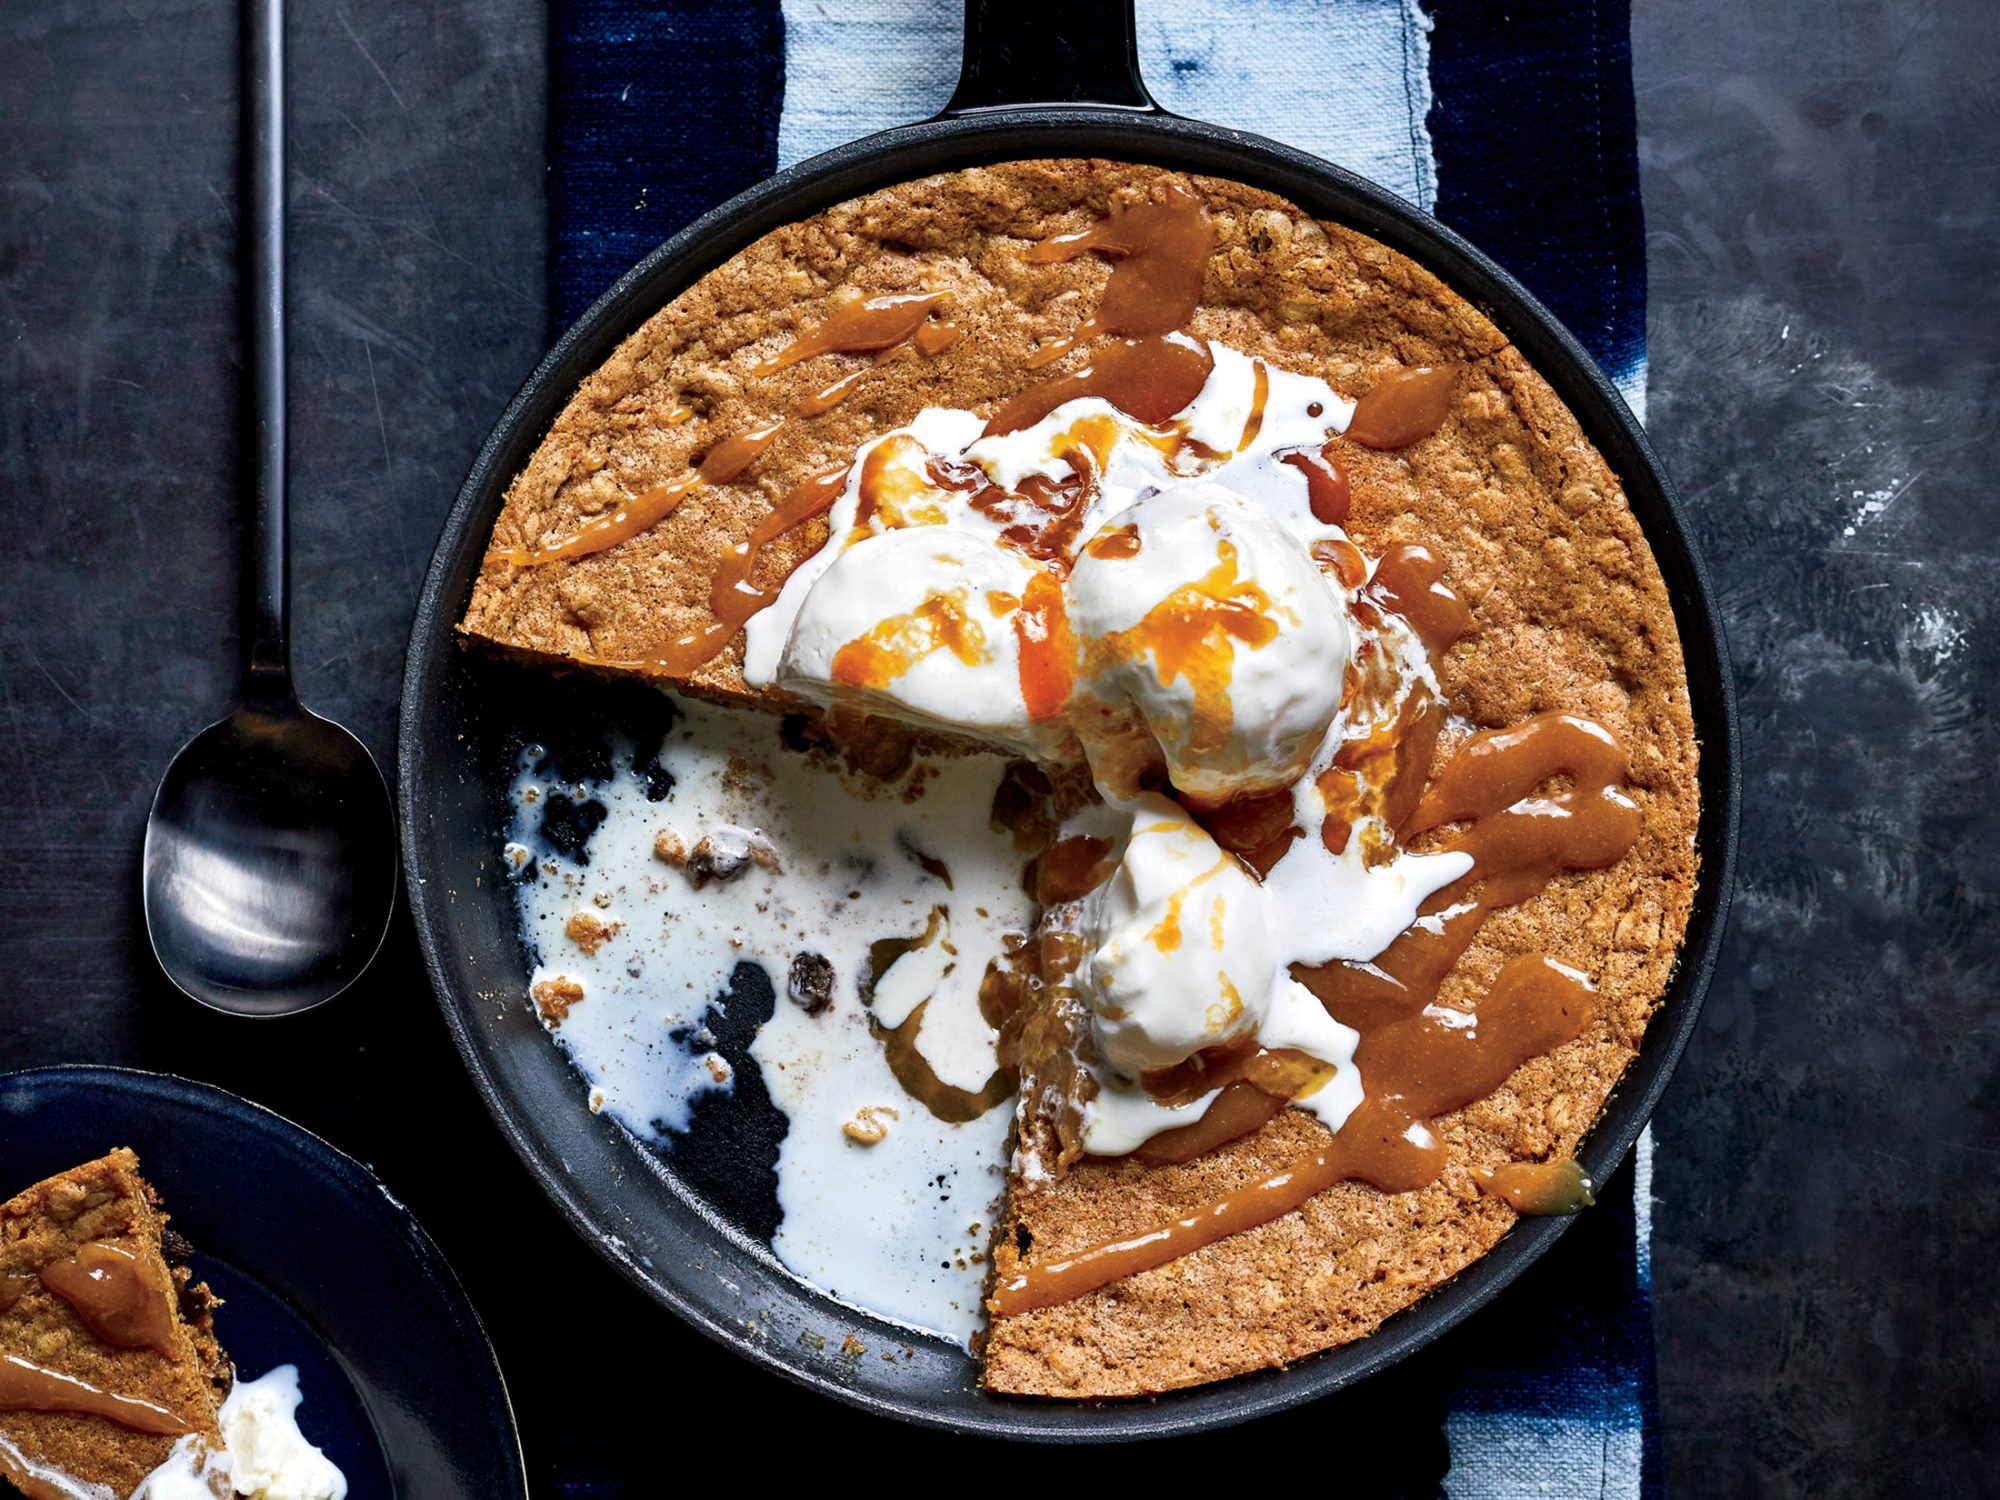 Oatmeal-Raisin Skillet Cookie with Miso-Caramel Sauce